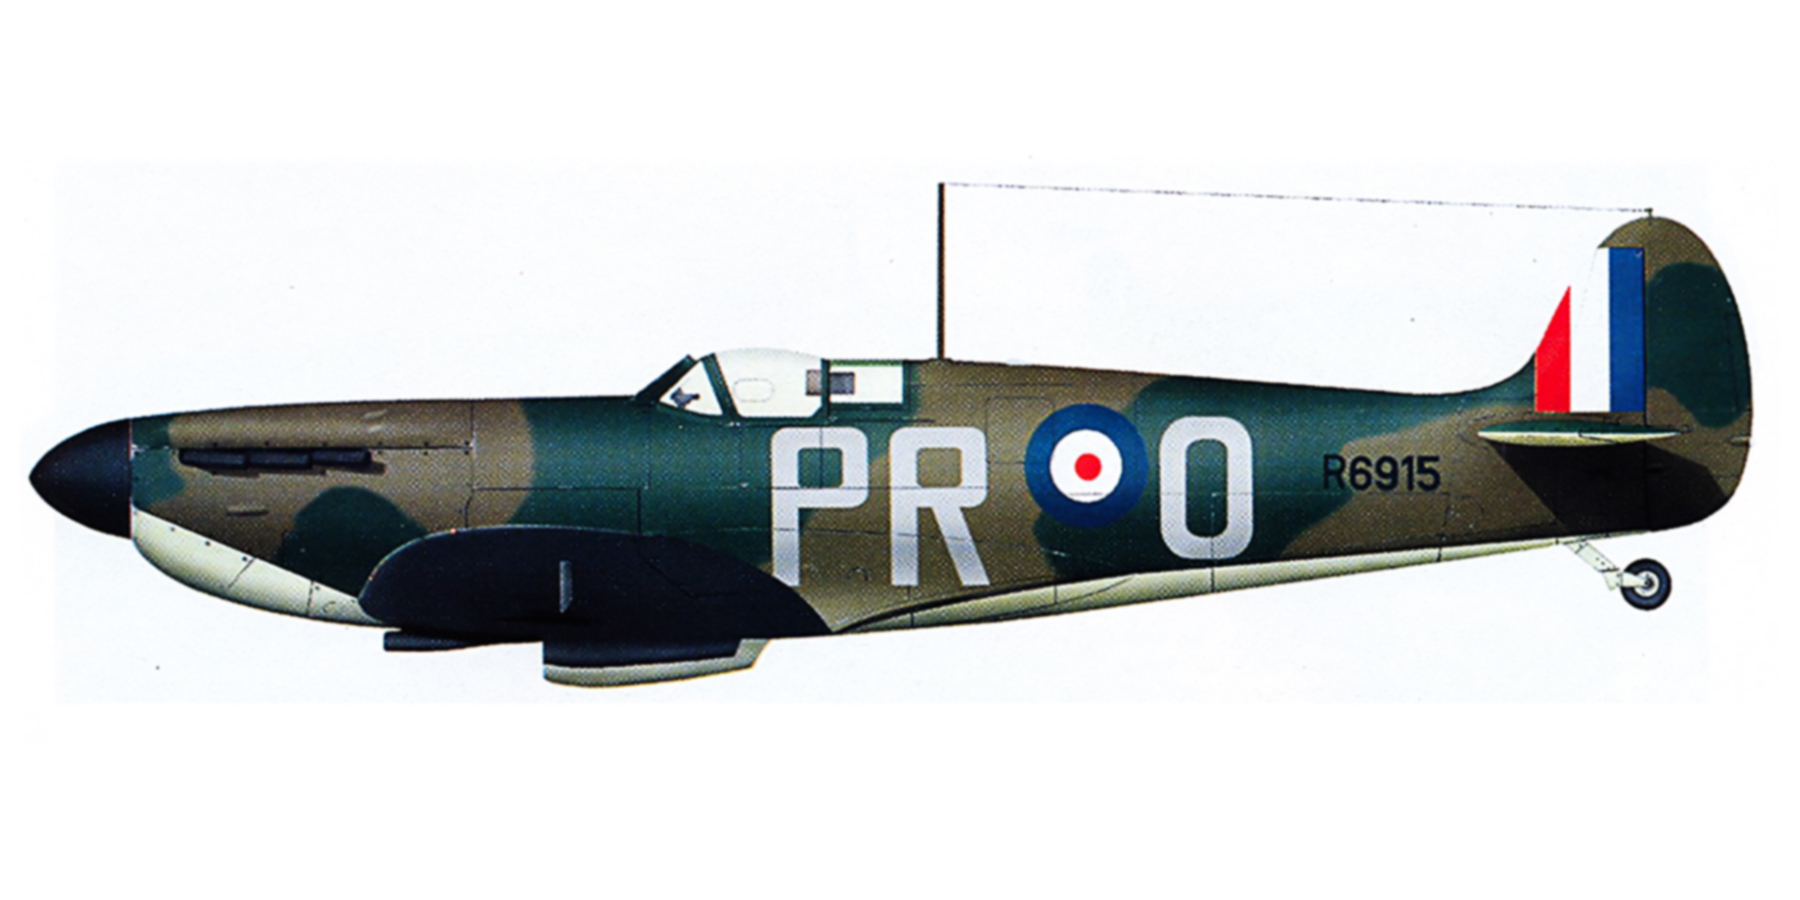 Spitfire MkIa RAF 609Sqn PRO R6915 Middle Wallop July 1940 0A